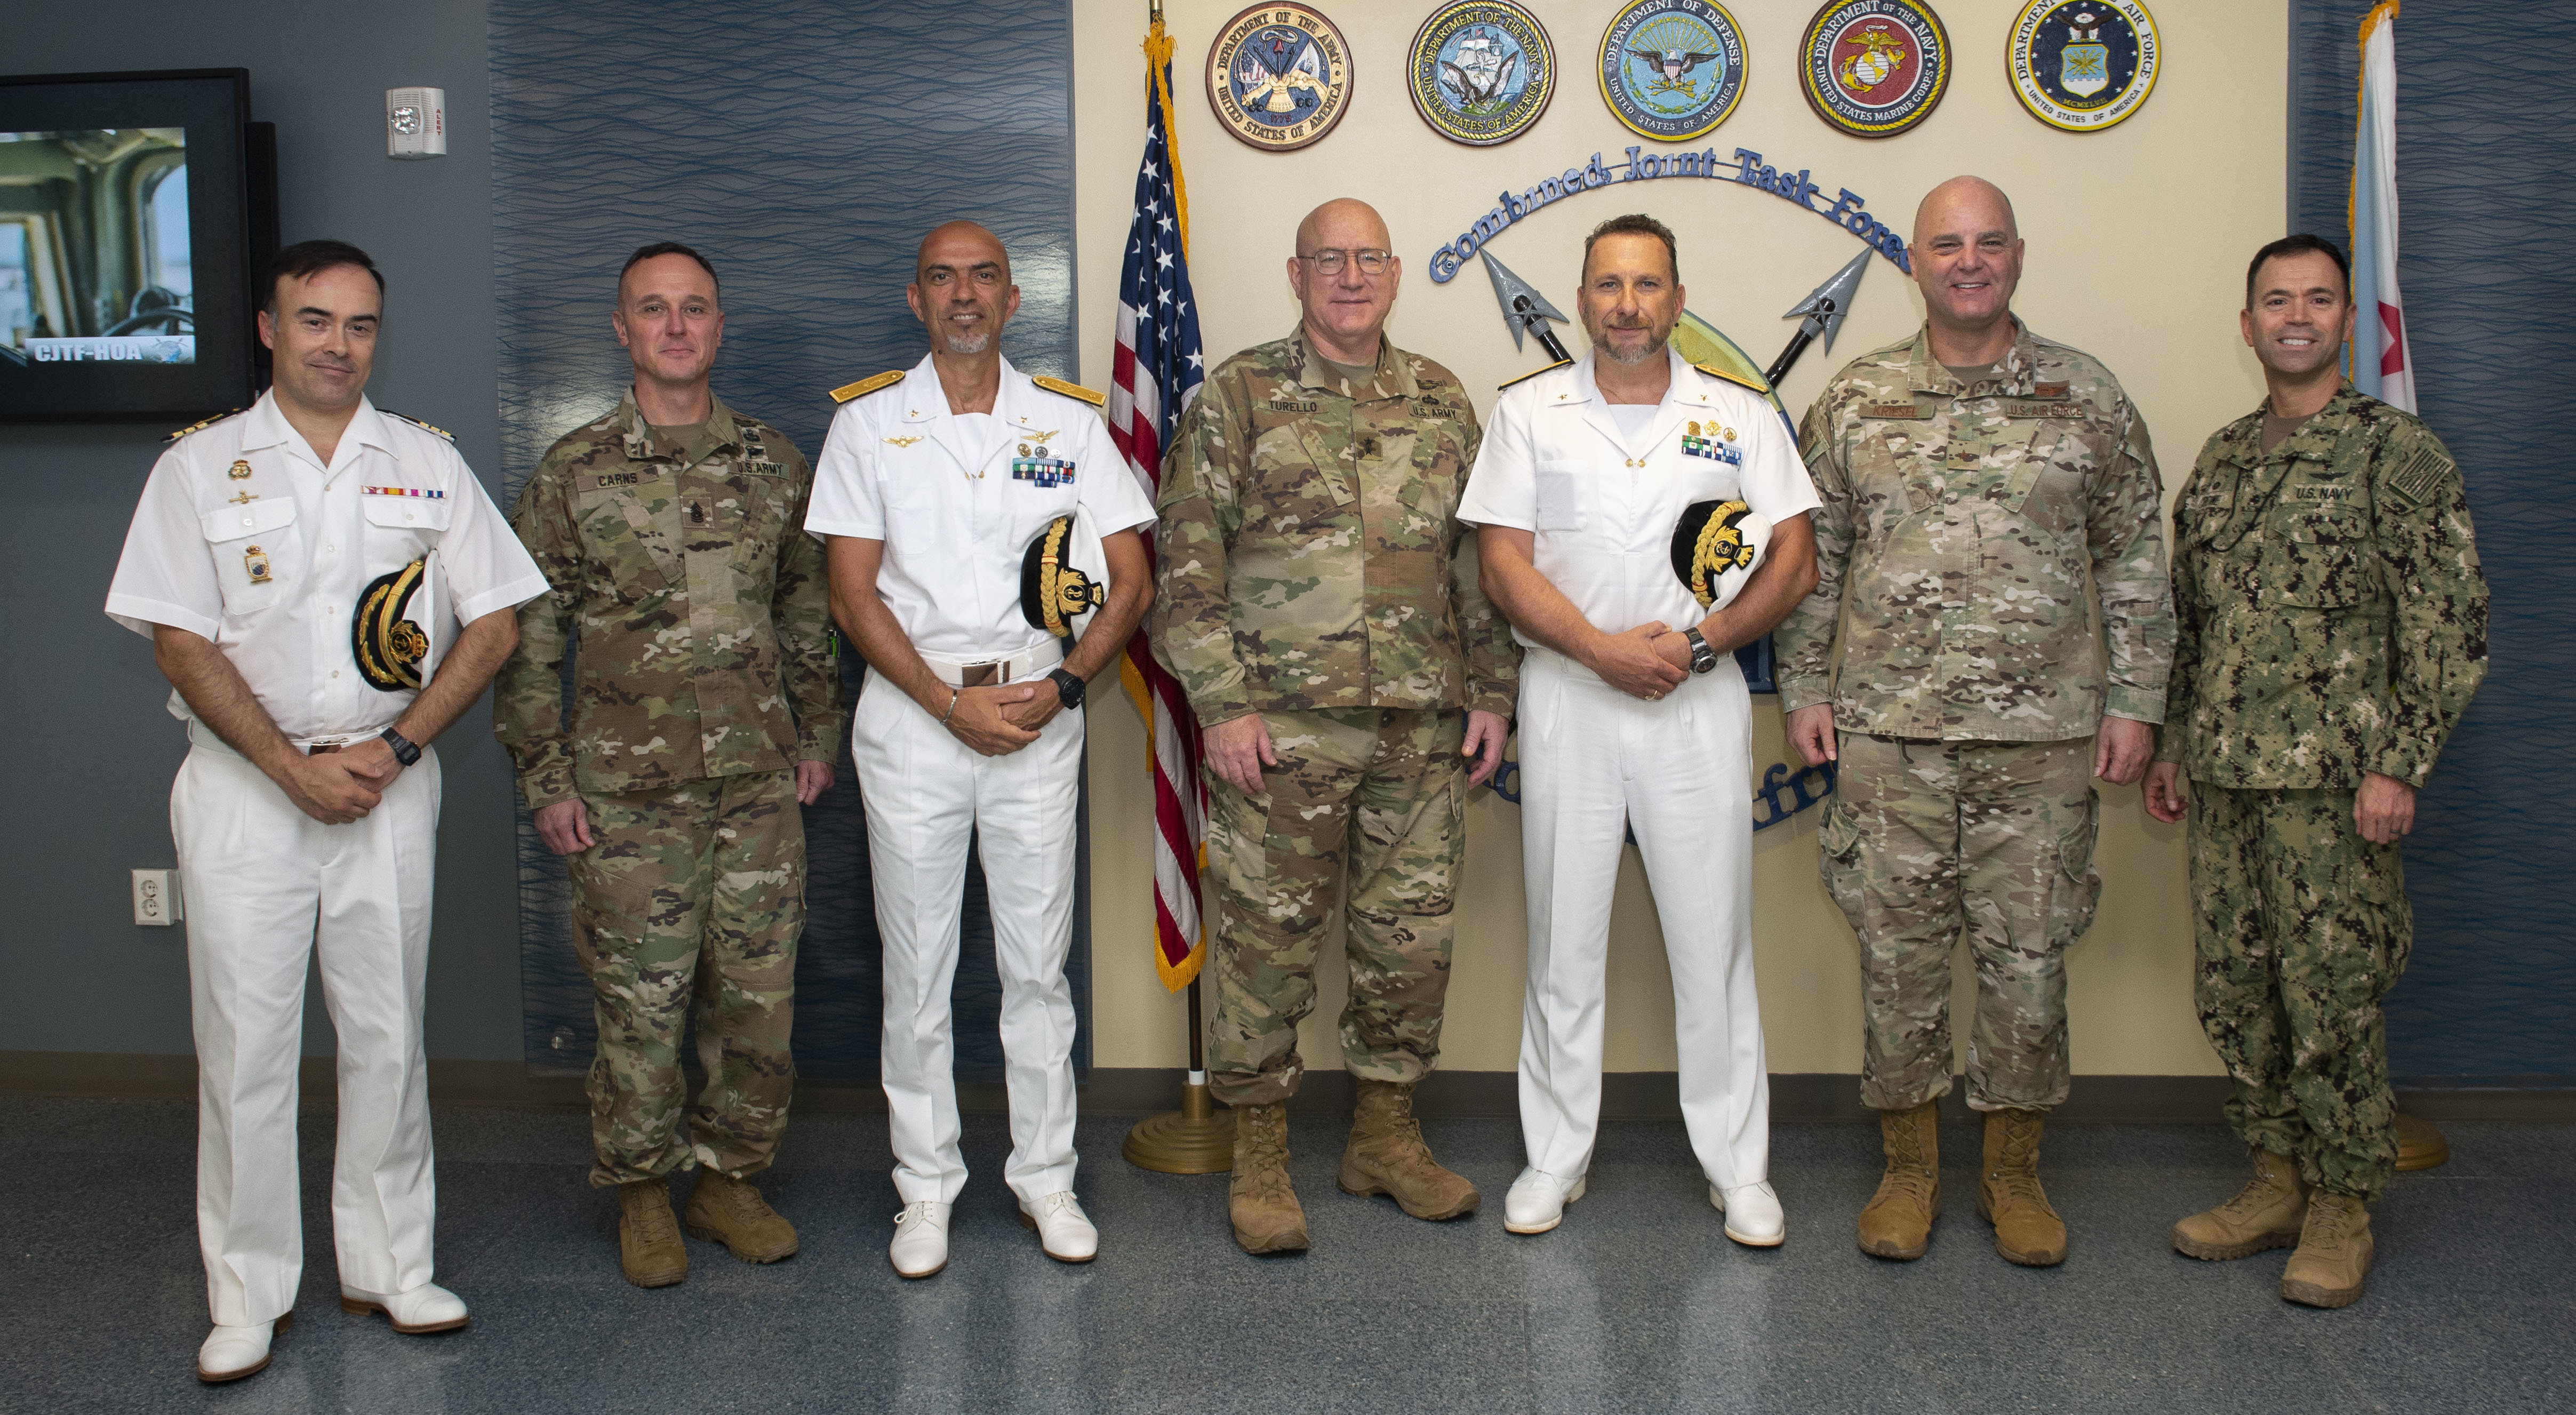 U.S. Army Maj. Gen. Michael Turello, commanding general, Combined Joint Task Force-Horn of Africa (CJTF-HOA), center, poses for a photo with Italian Rear Adm. Giovanni Piegaja, deputy operation commander, Operation Atalanta, center right, and other service members from CJTF-HOA, Camp Lemonnier and Operation Atalanta at Camp Lemonnier, Djibouti, July 21, 2019. Piegaja and members of his staff visited CJTF-HOA to discuss the Atalanta mission and strengthen the partnership between CJTF-HOA and Operation Atalanta. (U.S. Air Force photo by Senior Airman Gabrielle Spalding)